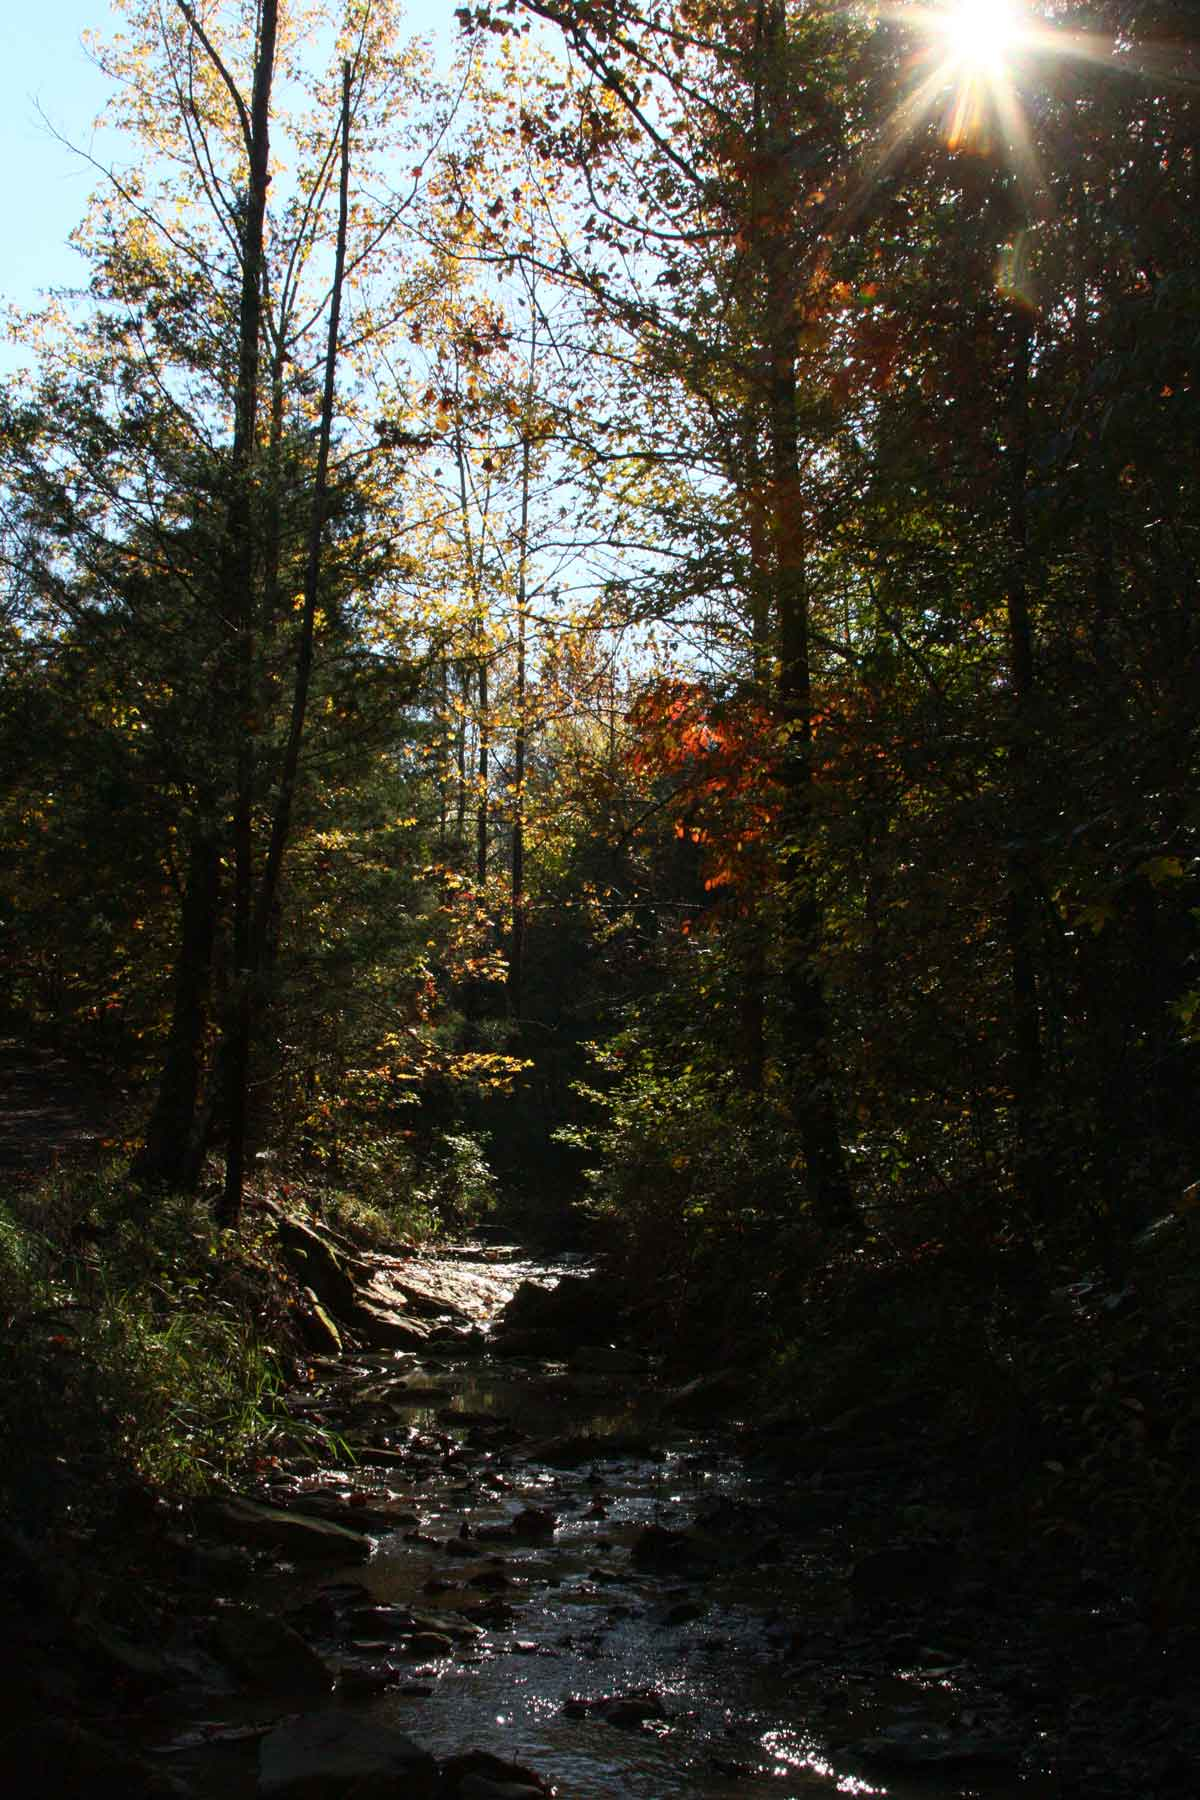 The creek that runs alongside our driveway. Locally, it's known as 'the branch', but I call it the Wild Ozark creek.